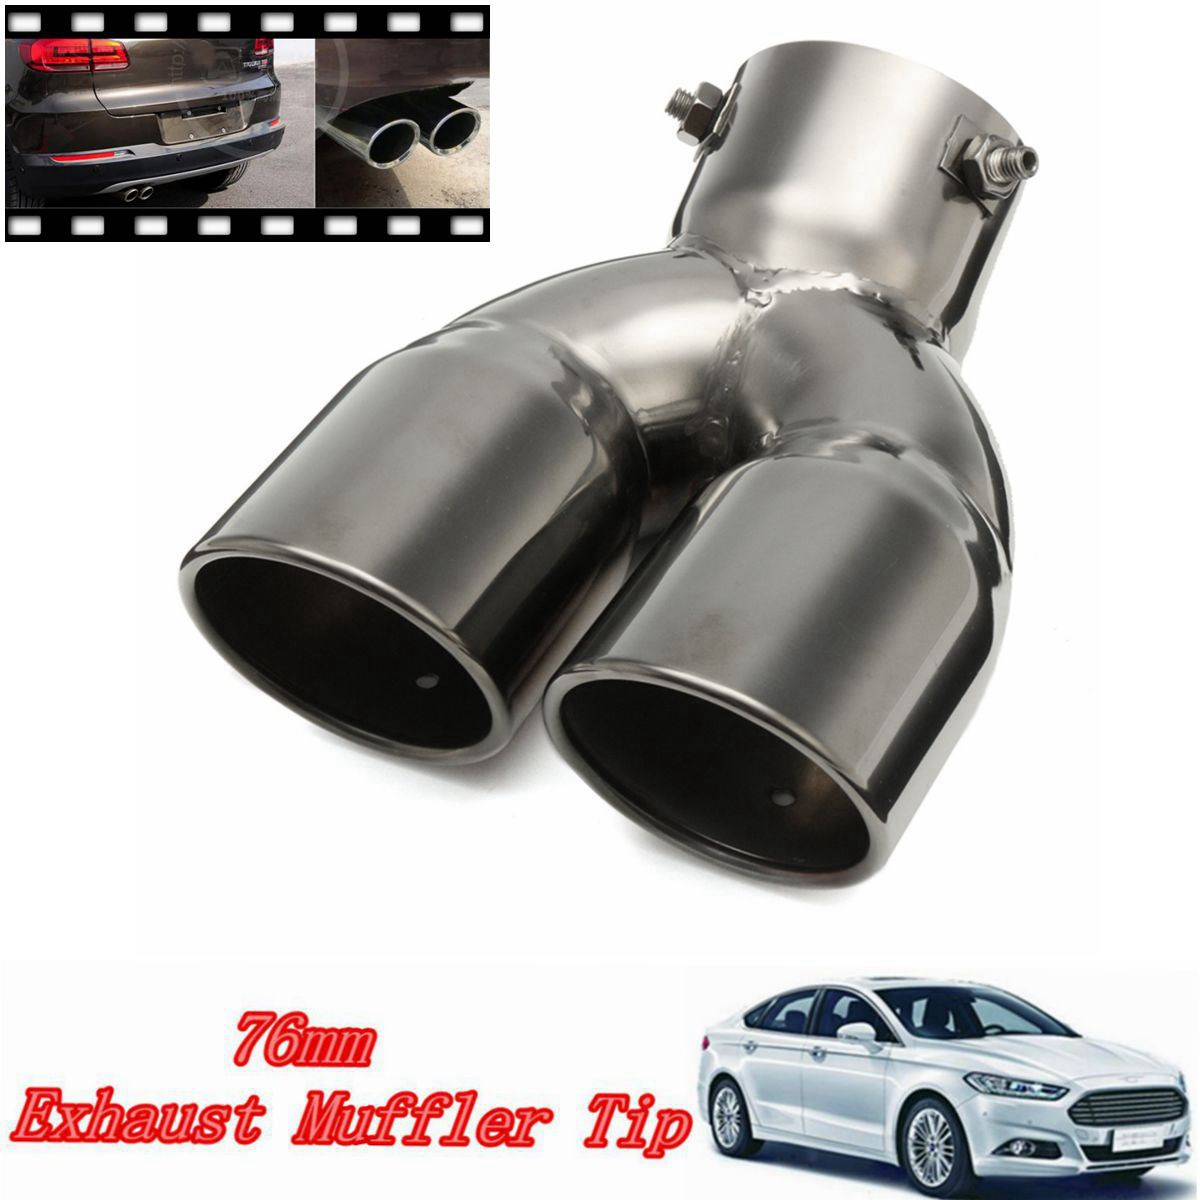 76mm Universal Chrome Stainless Steel Car Rear Round Exhaust Pipe Tail Muffler 2pcs 54mm inlet 76mm outlet remus universal stainless steel car rear blue exhaust pipe tail muffler tip for car muffler exhaust